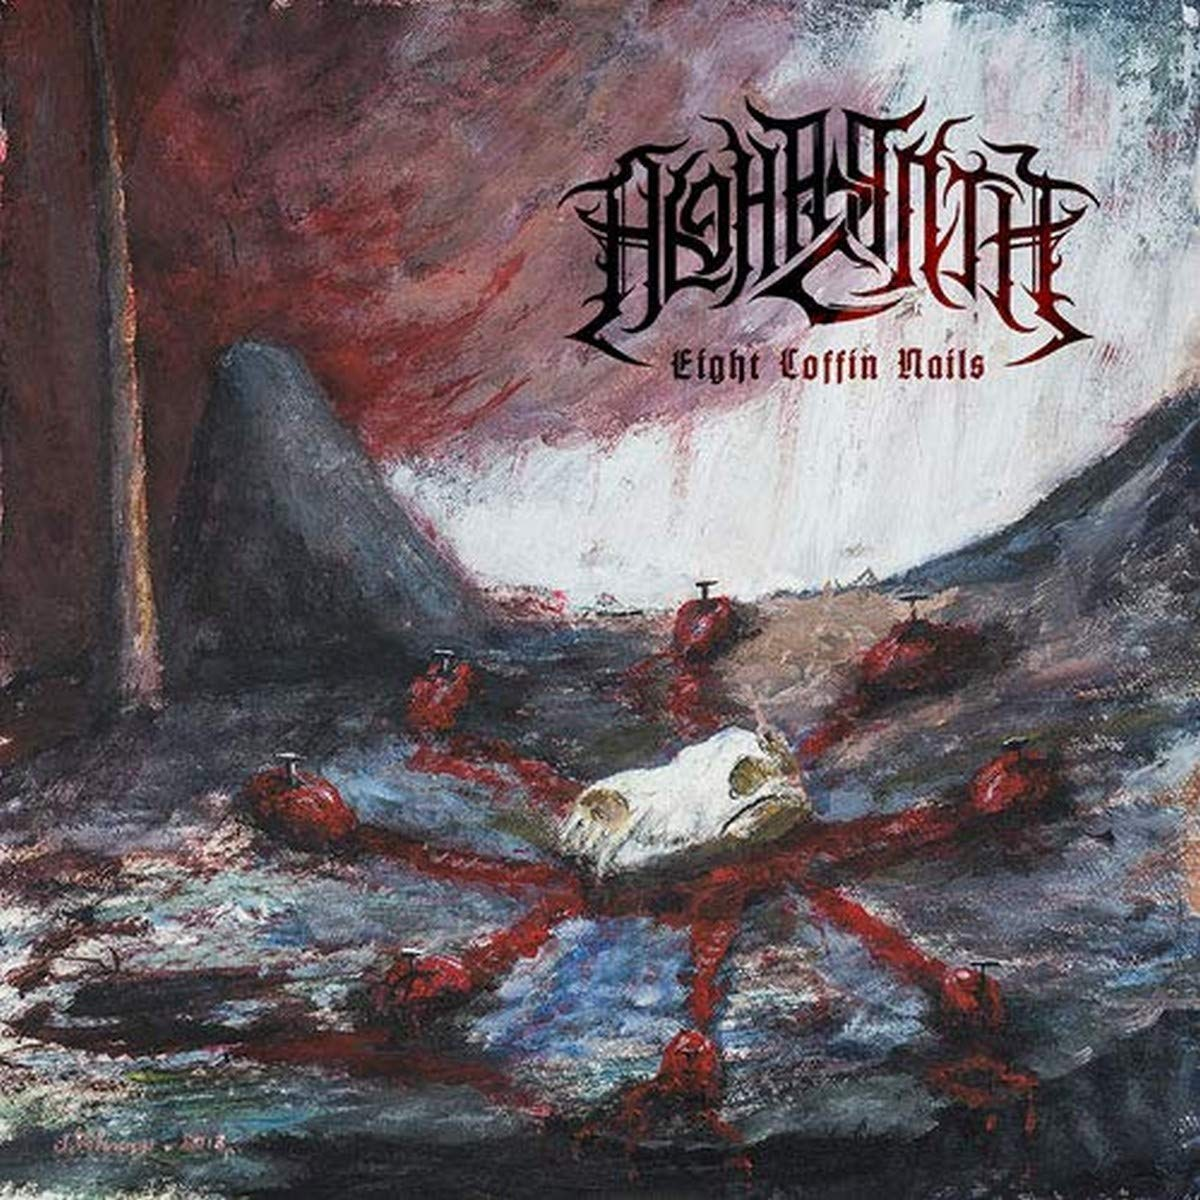 Review for Alghazanth - Eight Coffin Nails